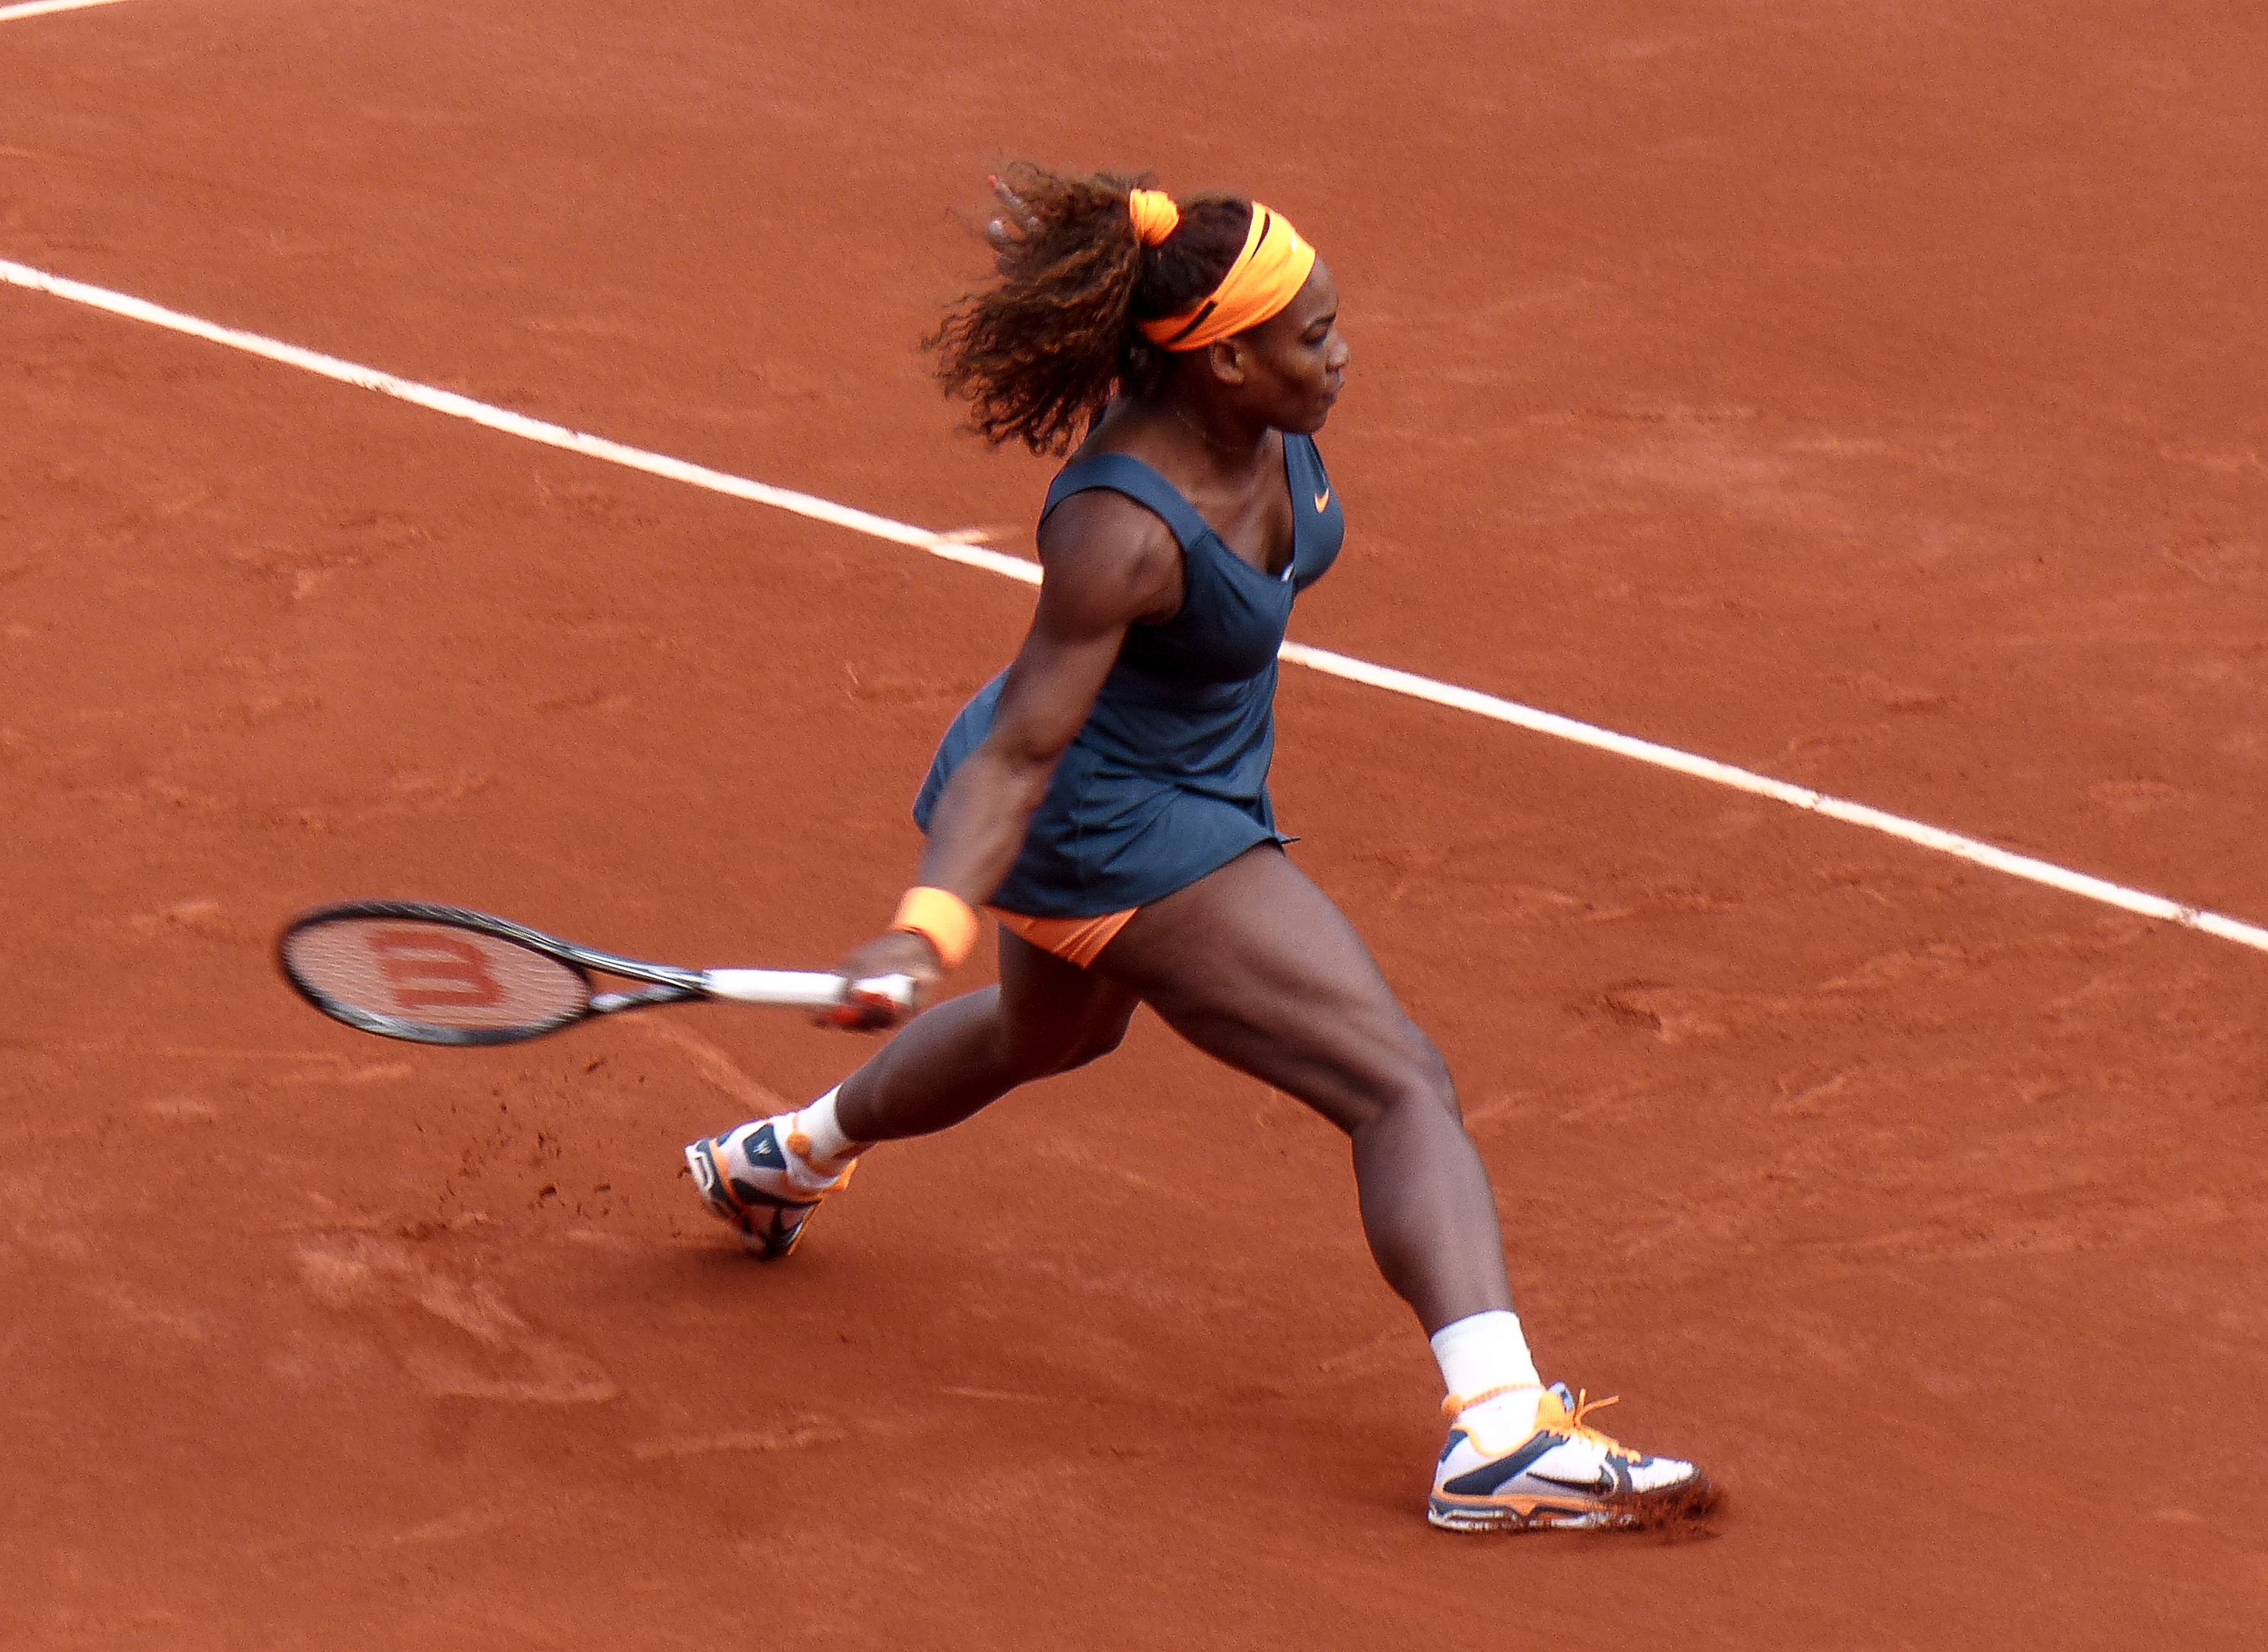 serena williams - roland garros 2013 - 007